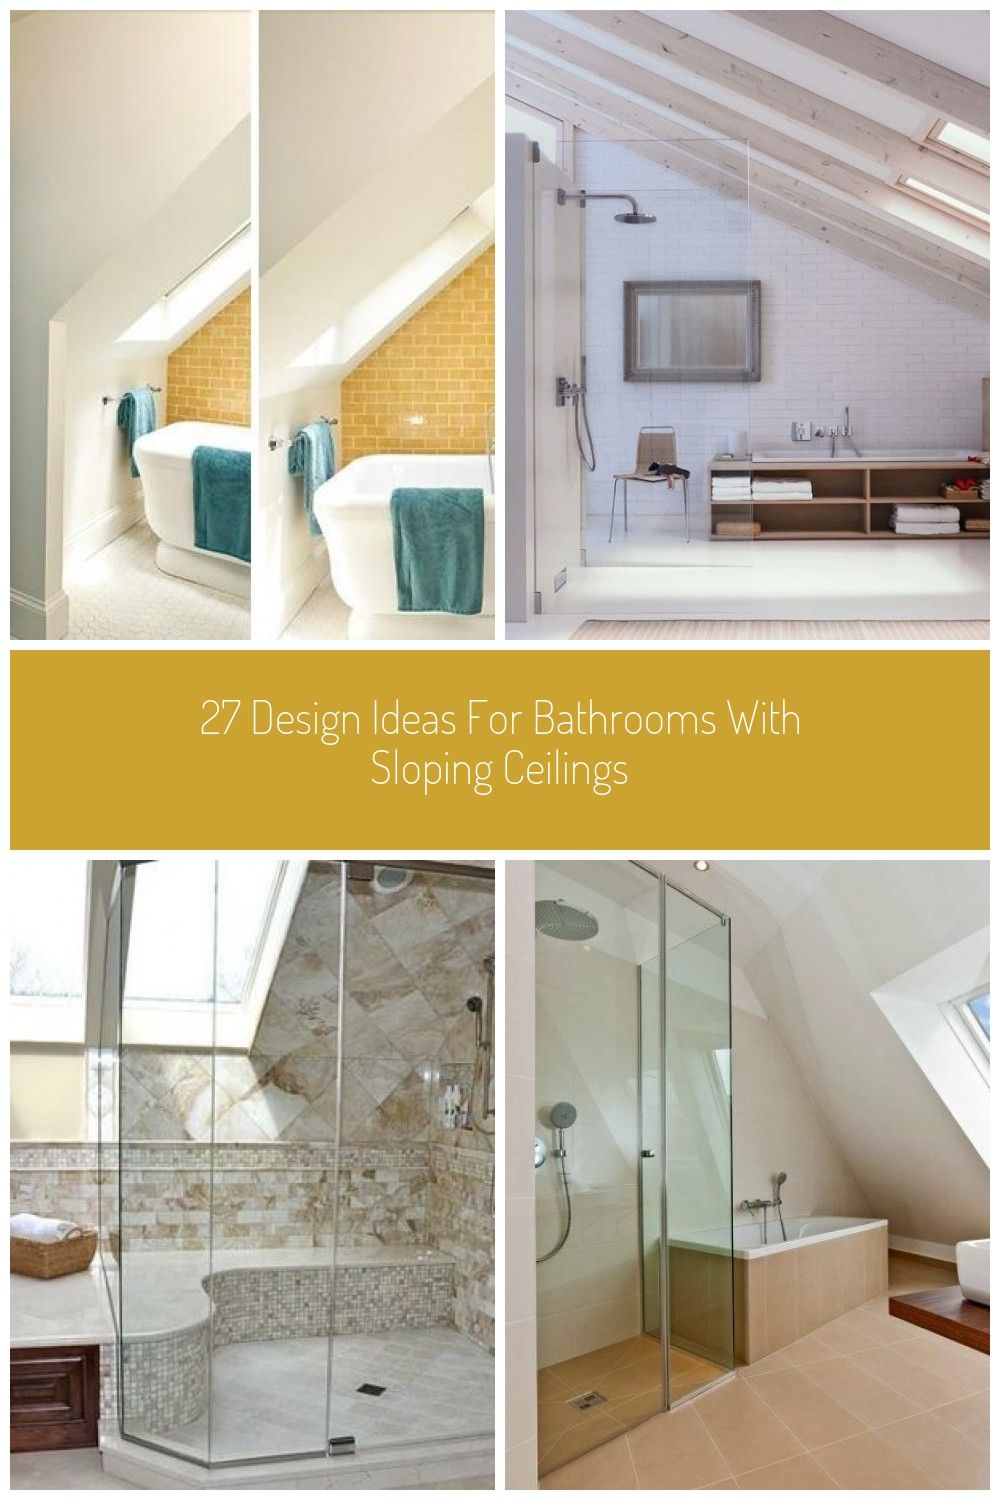 27 Design Ideas For Bathrooms With Sloping Ceilings